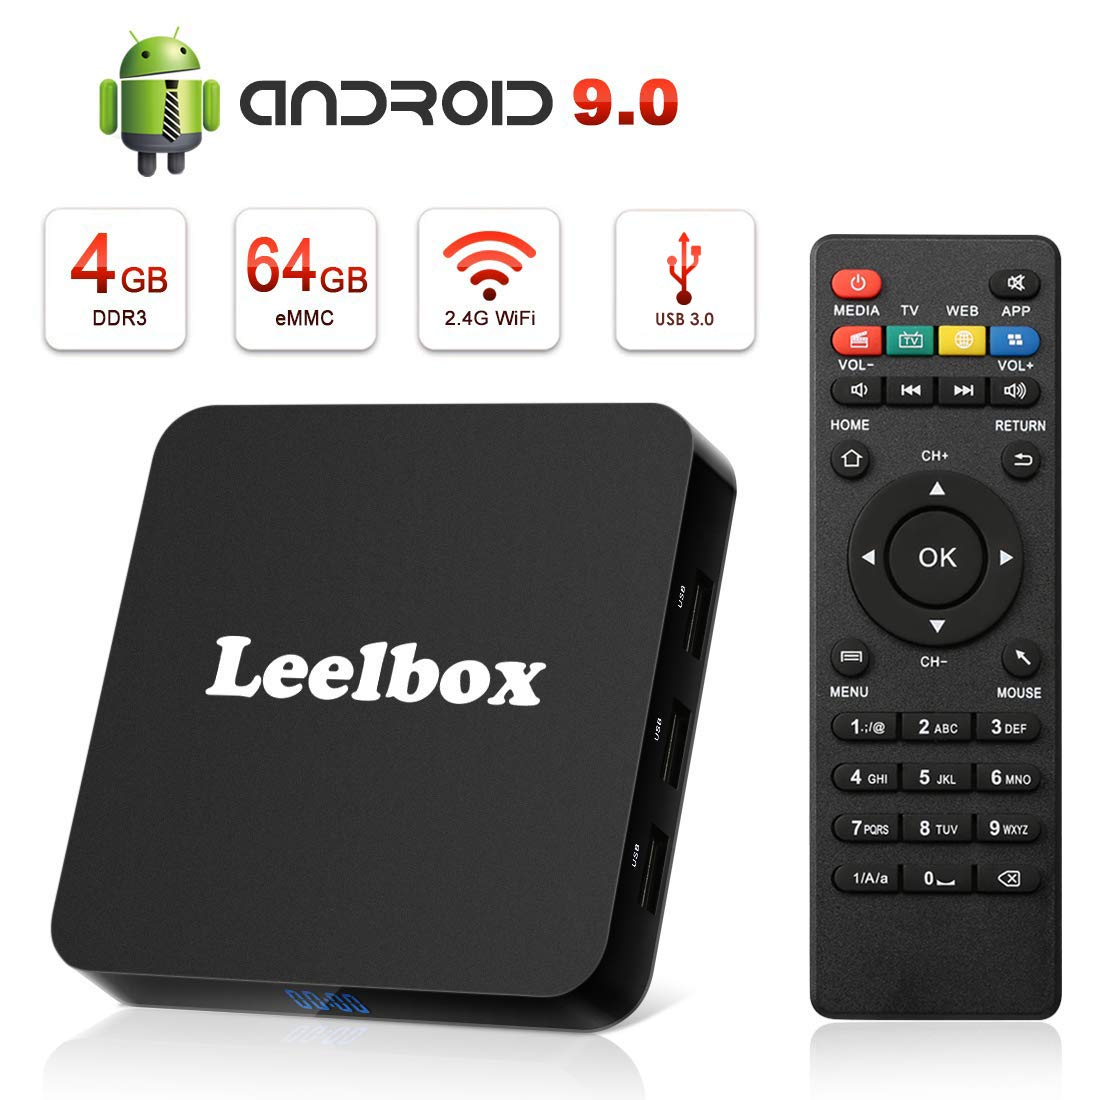 Android TV Box 9.0, 4GB RAM 64GB ROM Leelbox Q4 Plus RK3328 Quad Core Smart TV Box Support USB 3.0,BT 4.1,2.4GHz WiFi,3D 4K H.265 by Leelbox